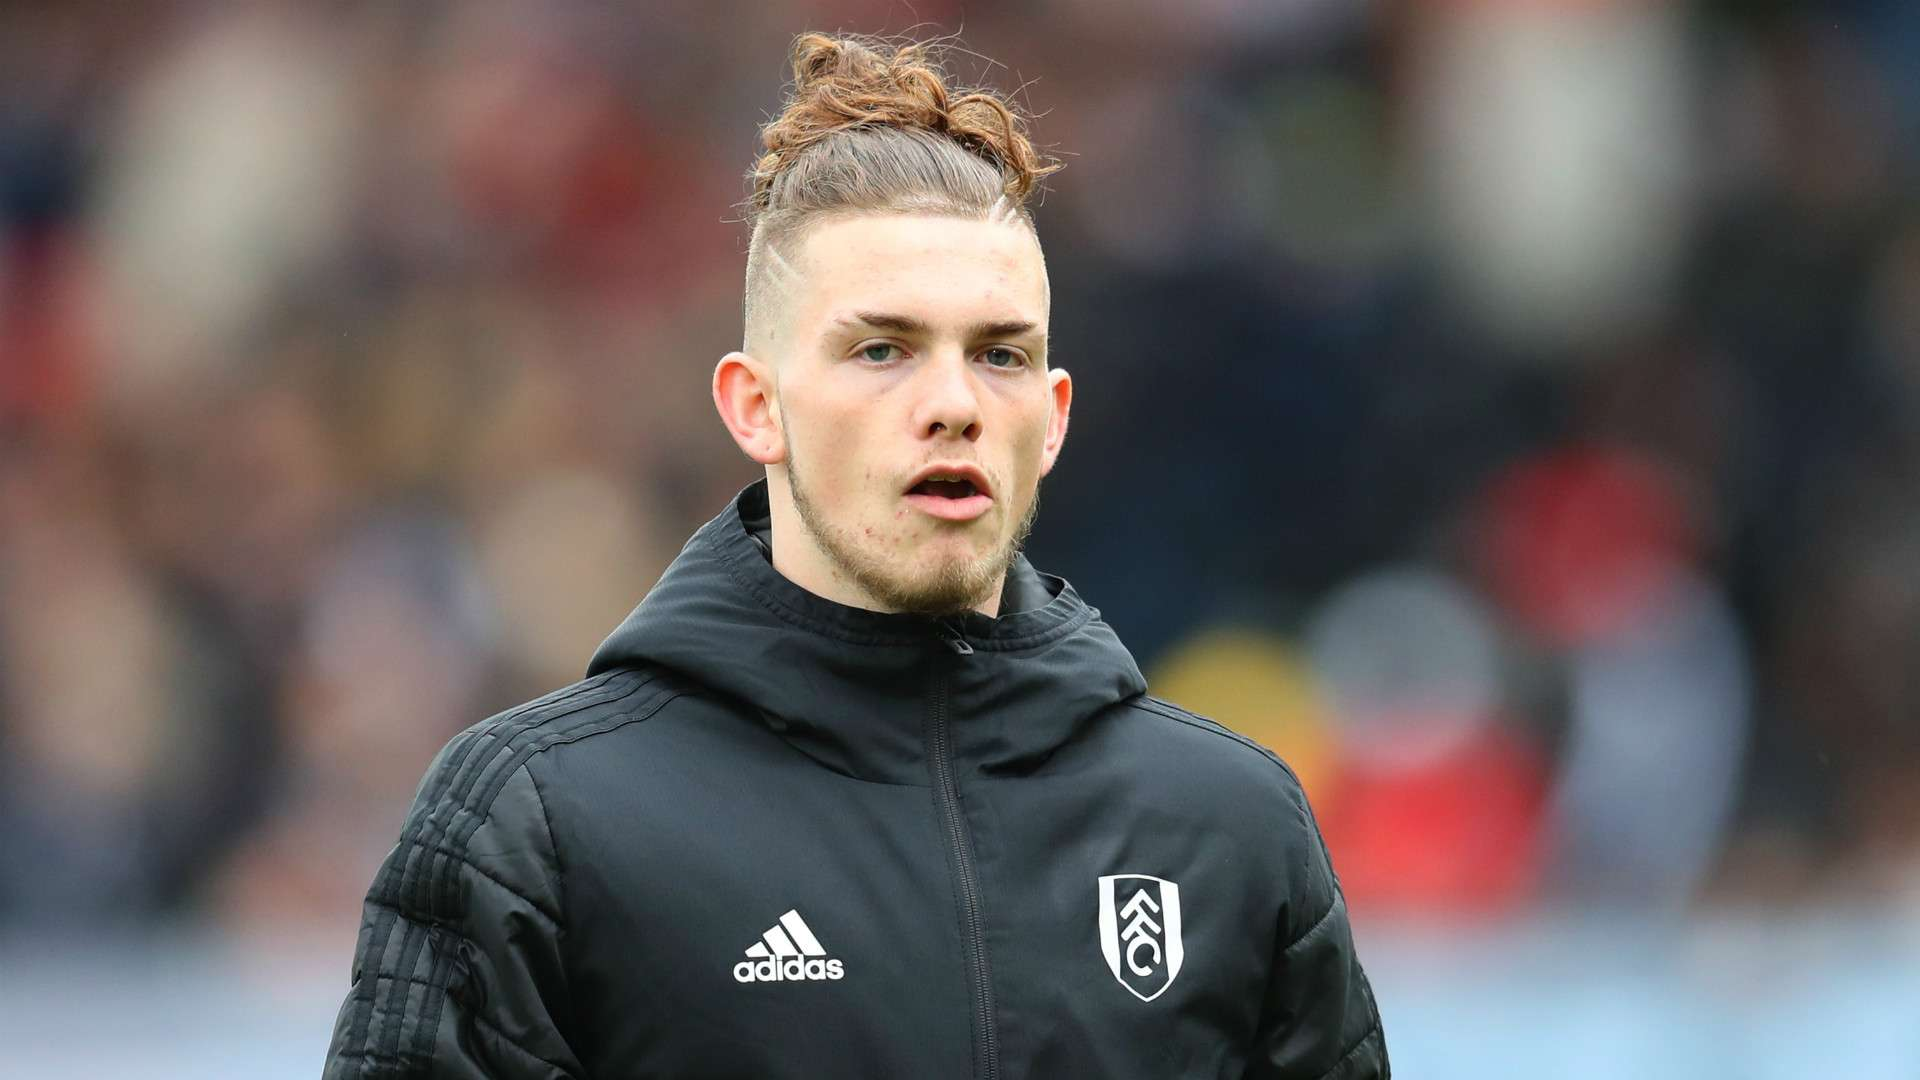 Liverpool Close In On Deal For Fulham Wonder Kid Harvey